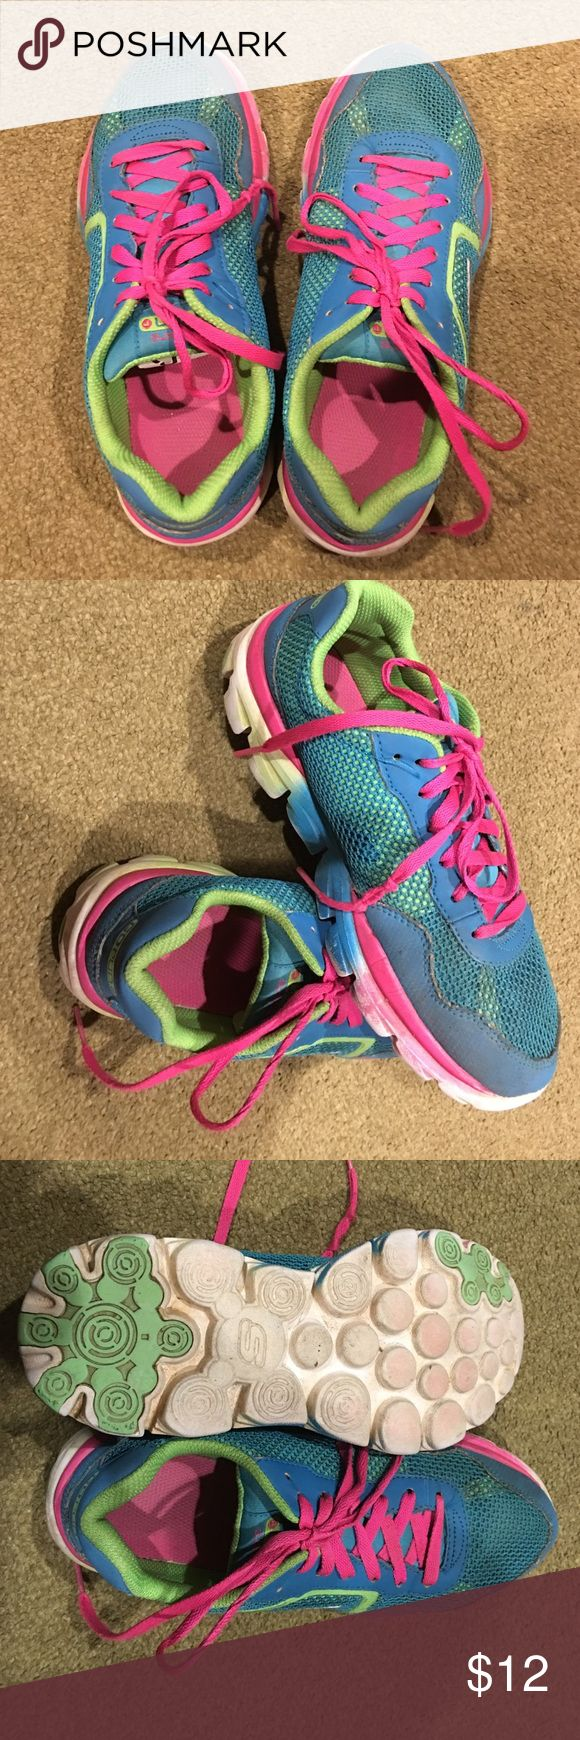 Skechers size 4 big kid Bright color good shape Skechers for girls size 4 Skechers Shoes Sneakers